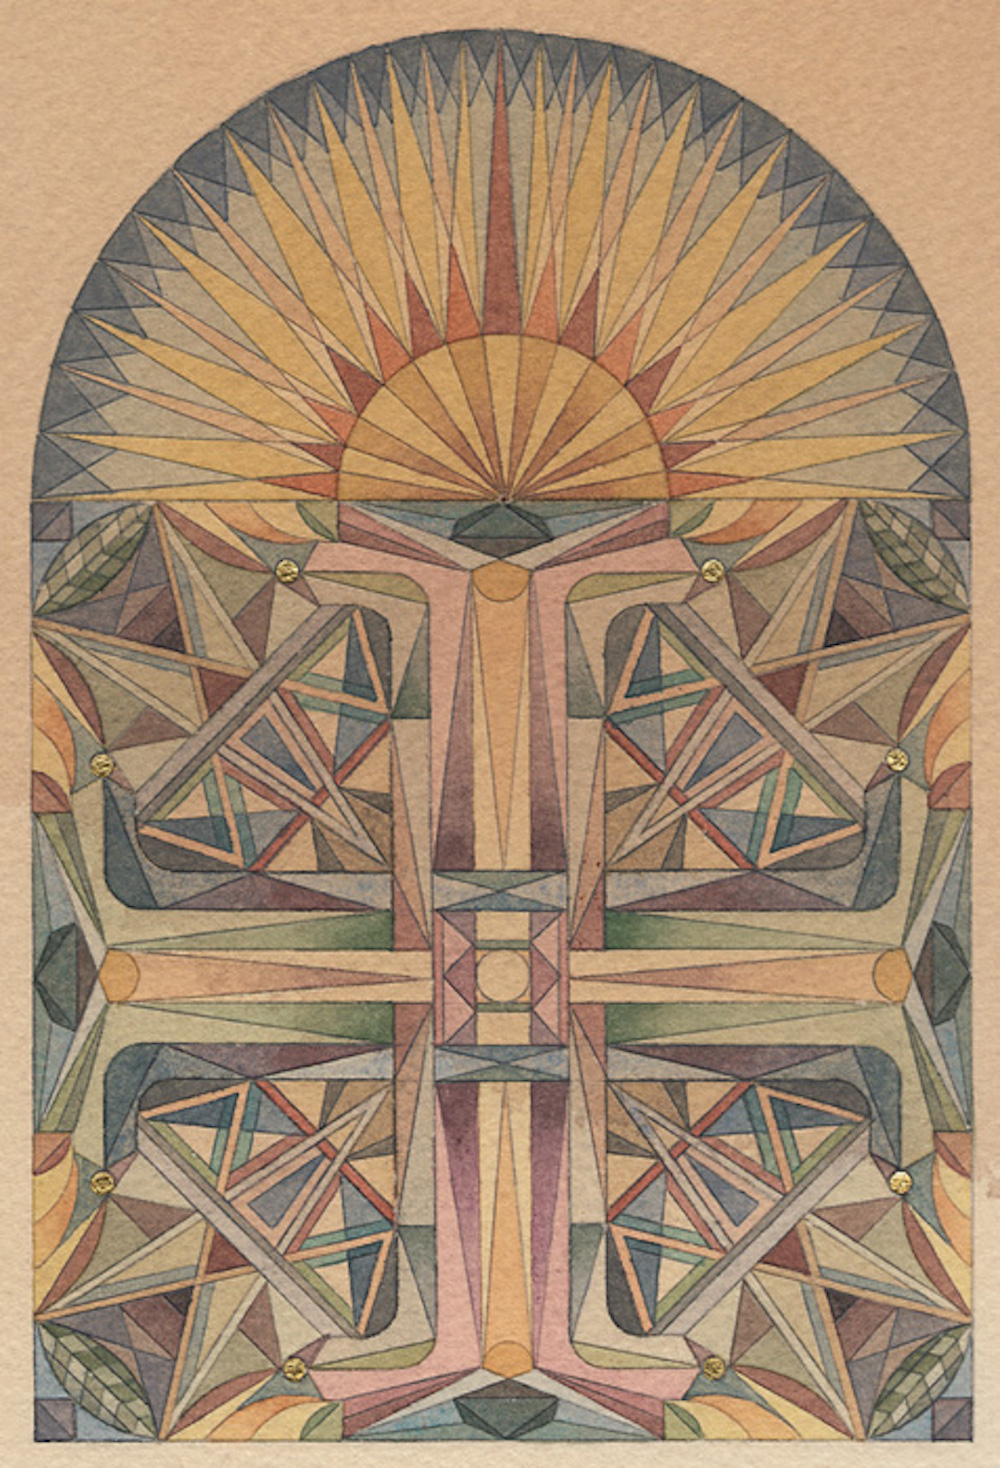 Meditation 30, 2011, Watercolour and gold-leaf on paper, 24 x 18 cm